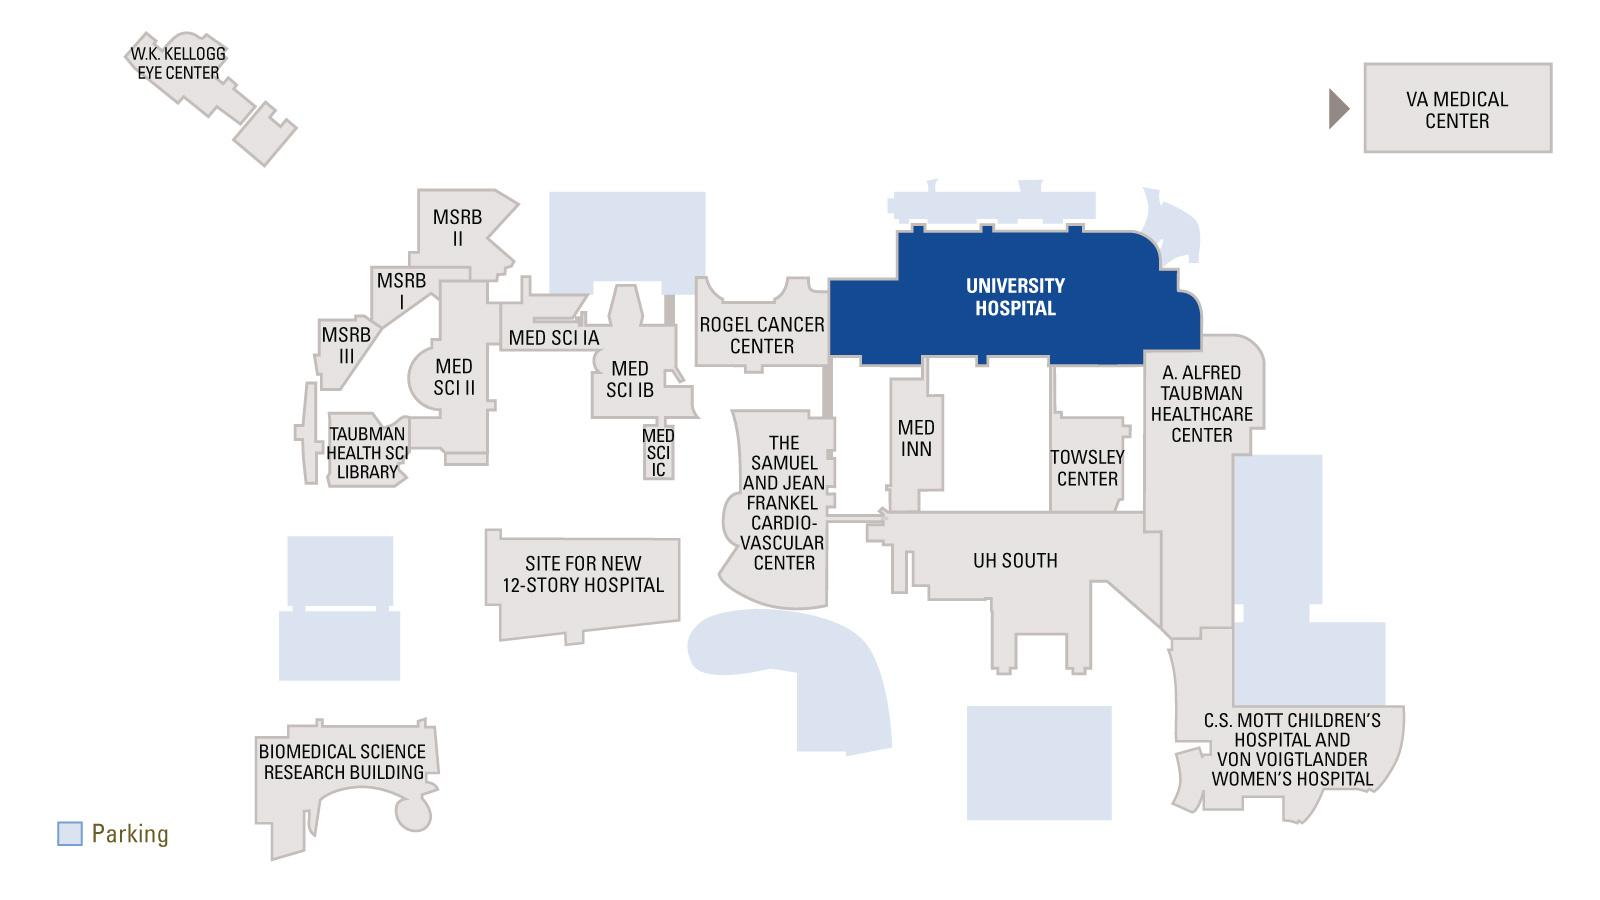 Map view of Medical campus with University Hospital highlighted in Blue